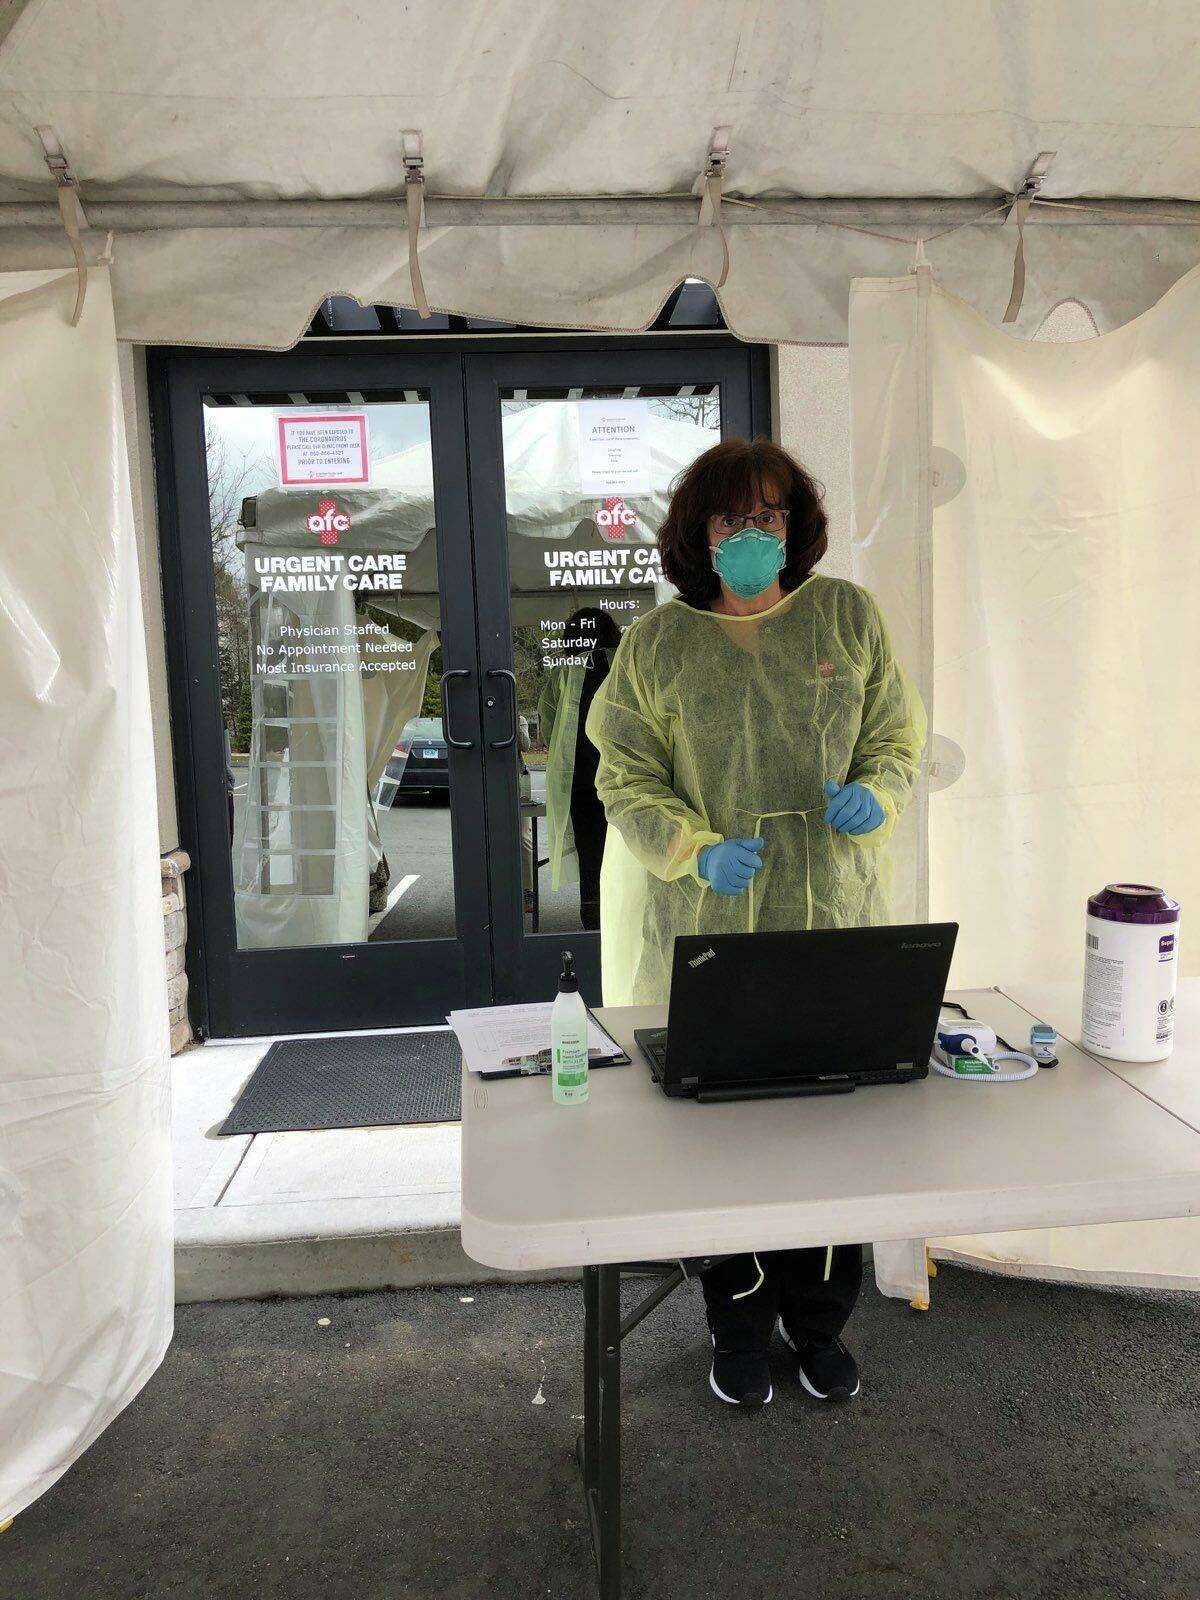 A care provider at American Family Care on East Main Street, Torrington, welcomes a patient for a COVID-19 test, which is being administered outside the facility in a small tent.